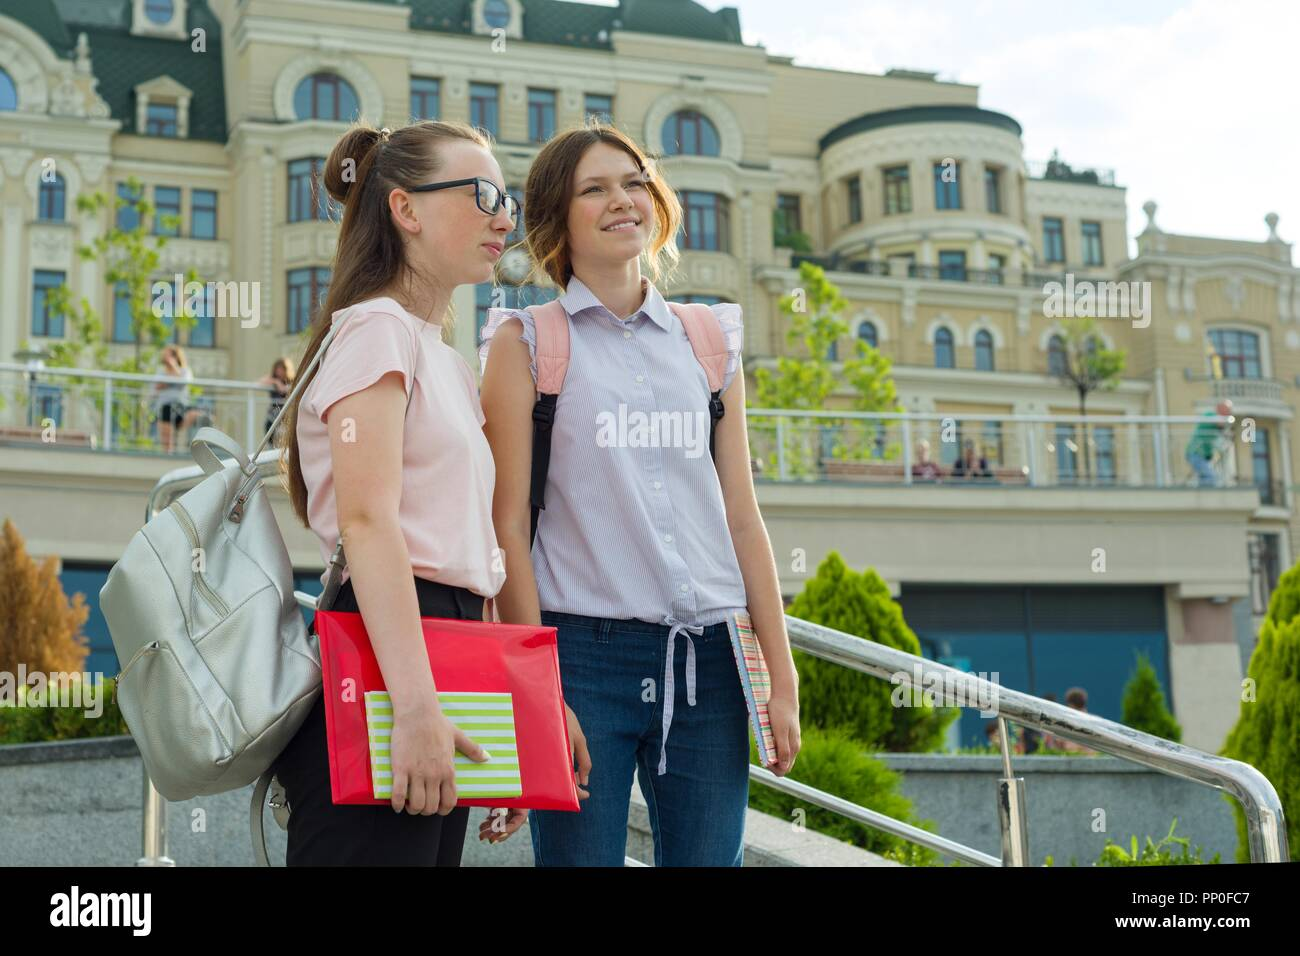 Back to school. Girls teenagers with backpacks and textbooks go to school - Stock Image